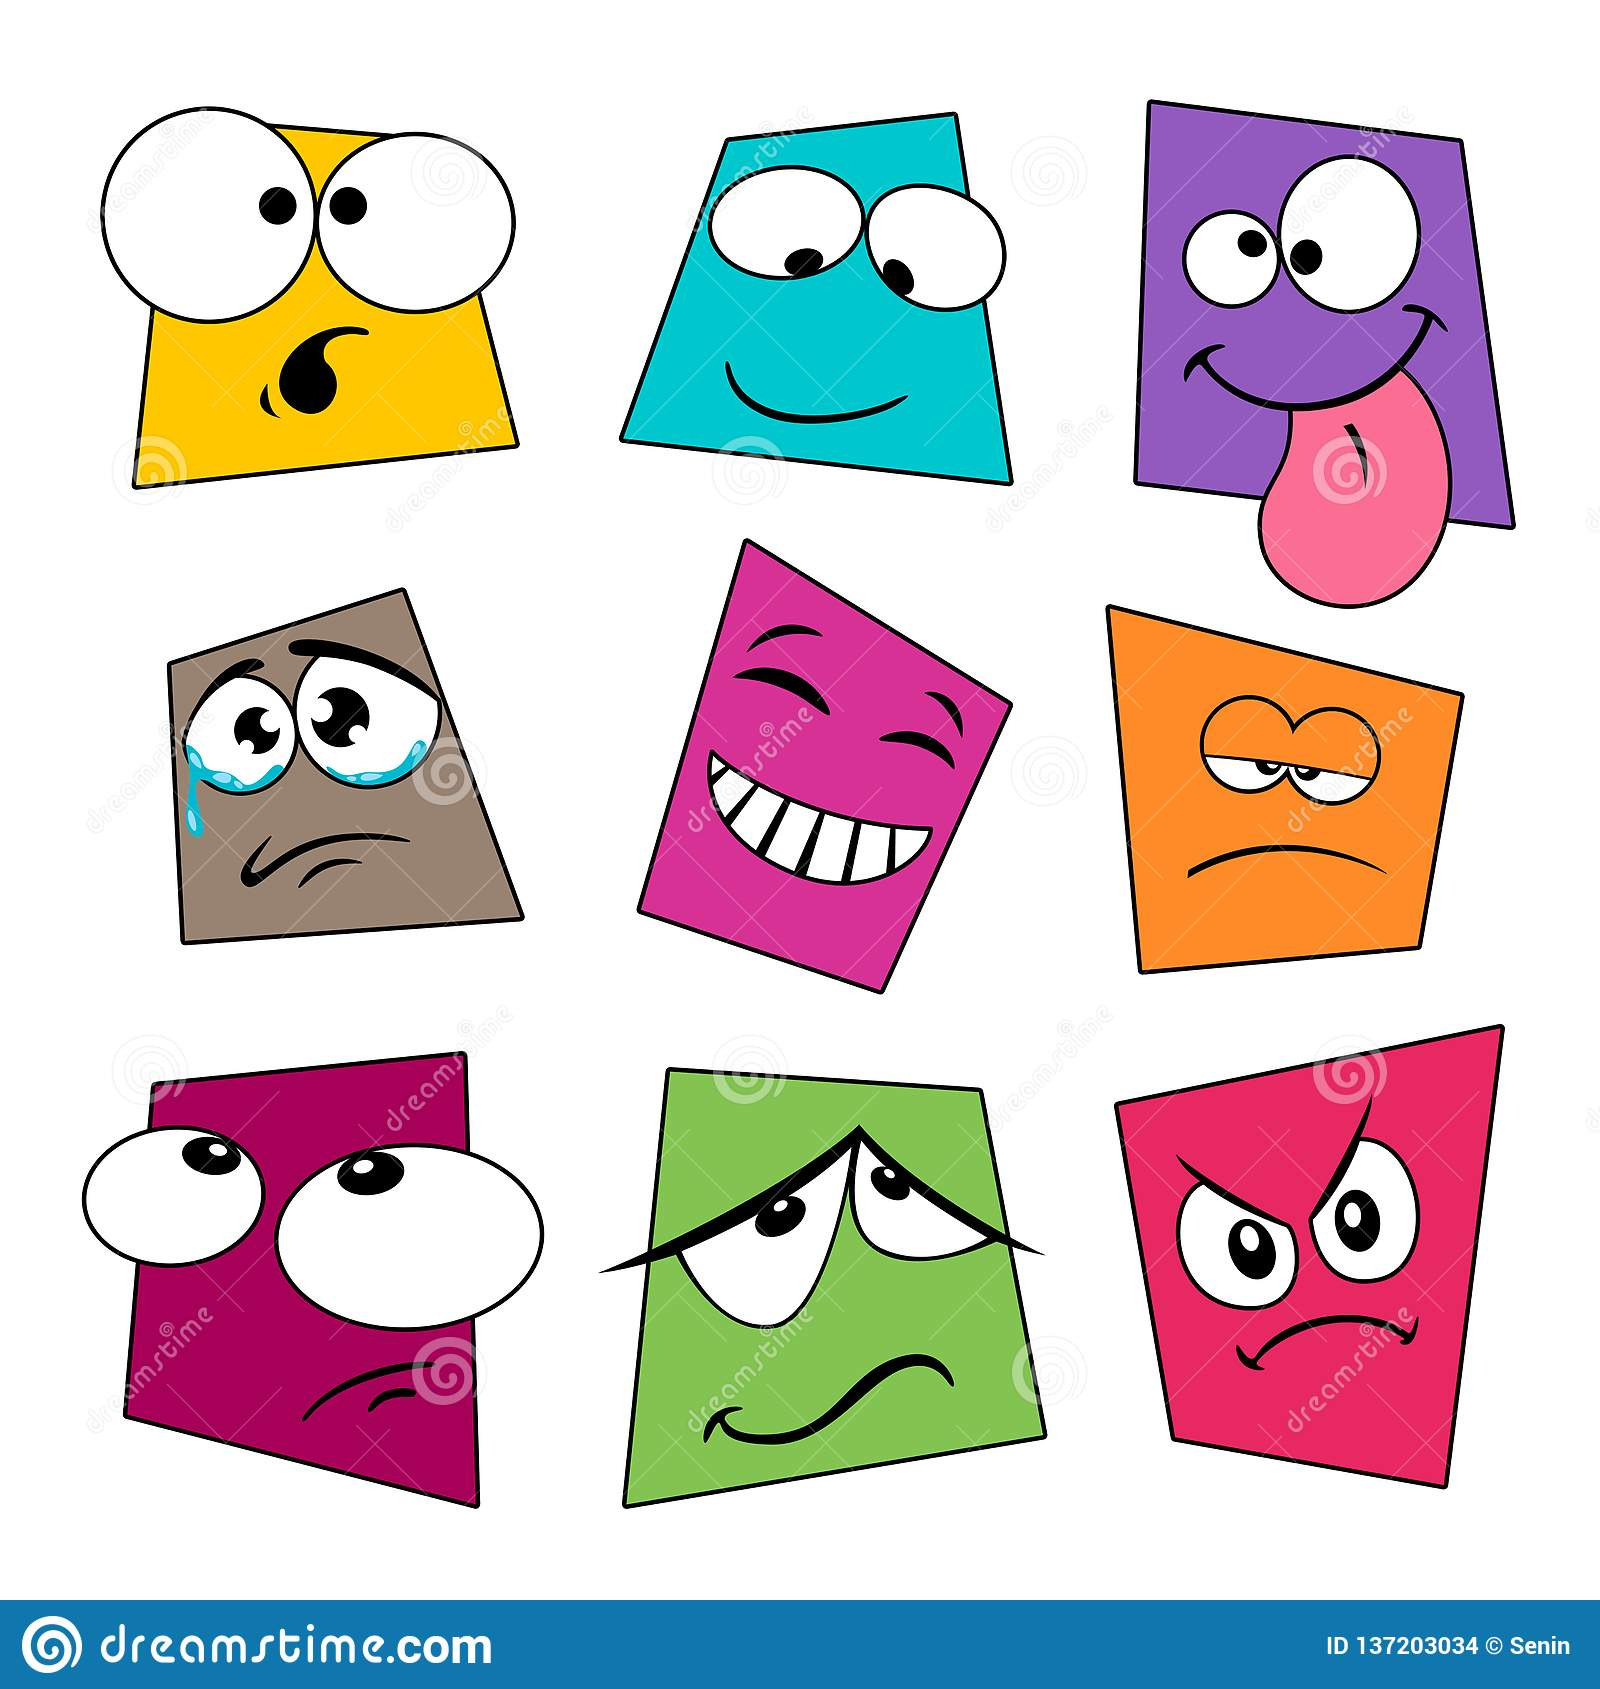 Cute Cartoon Emotional Expressive Faces Collection Stock